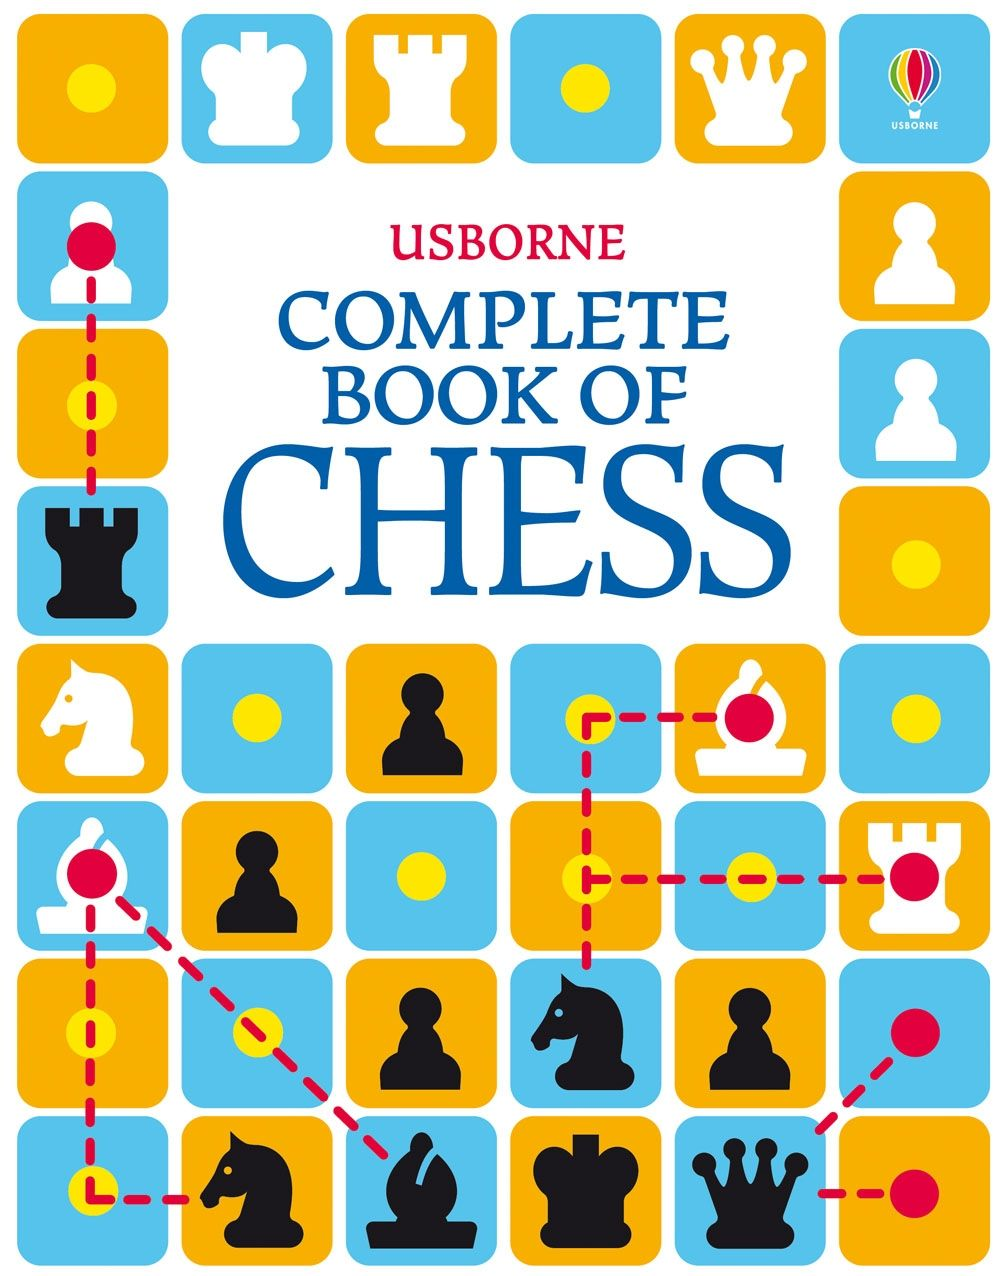 Usborne 'Complete Book of Chess'